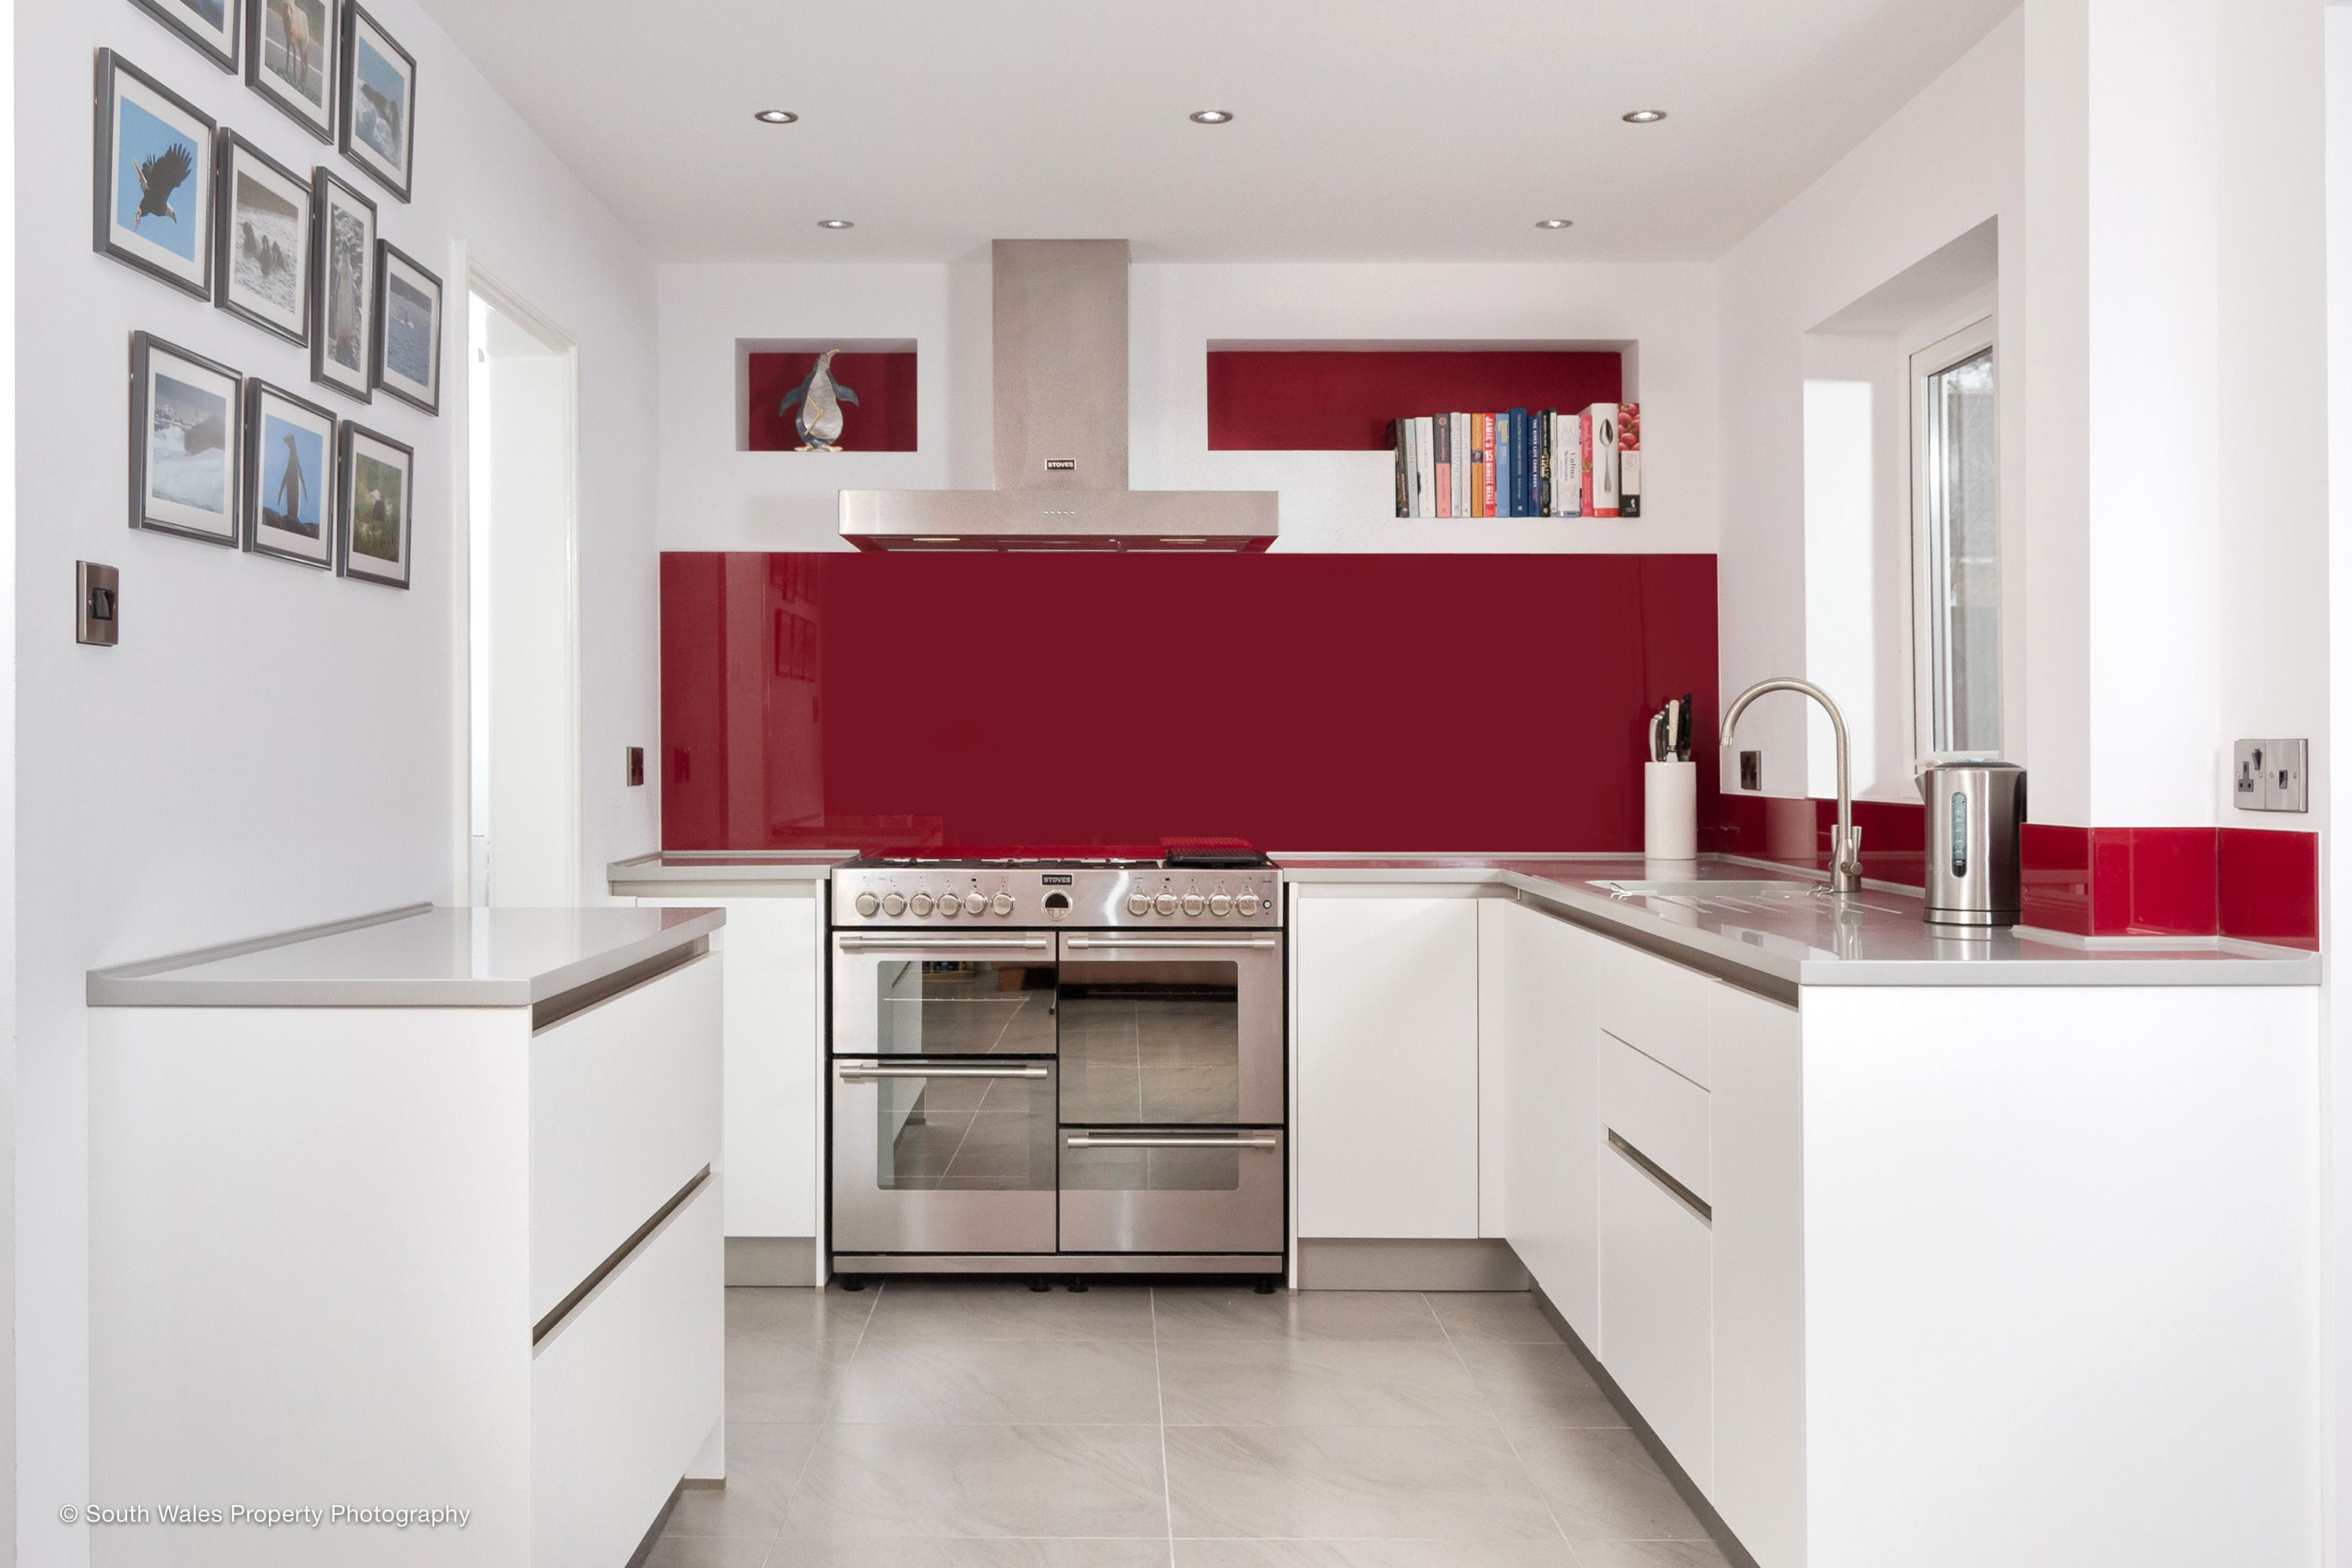 Download Wallpaper White Kitchen With Red Worktop